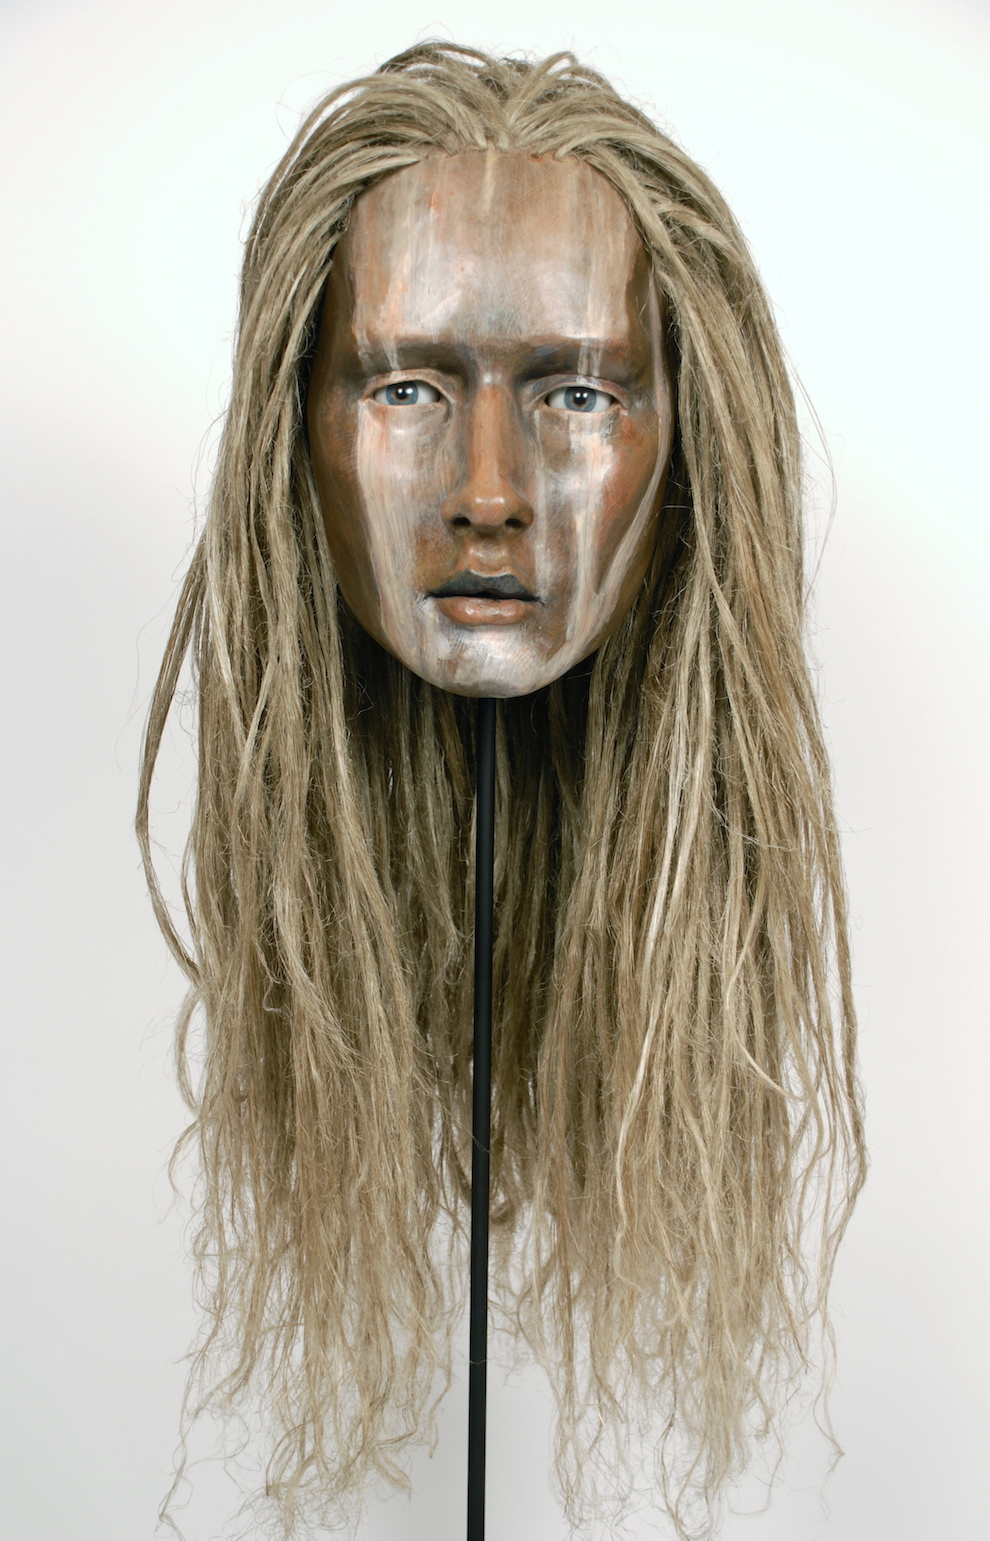 Mask of a woman